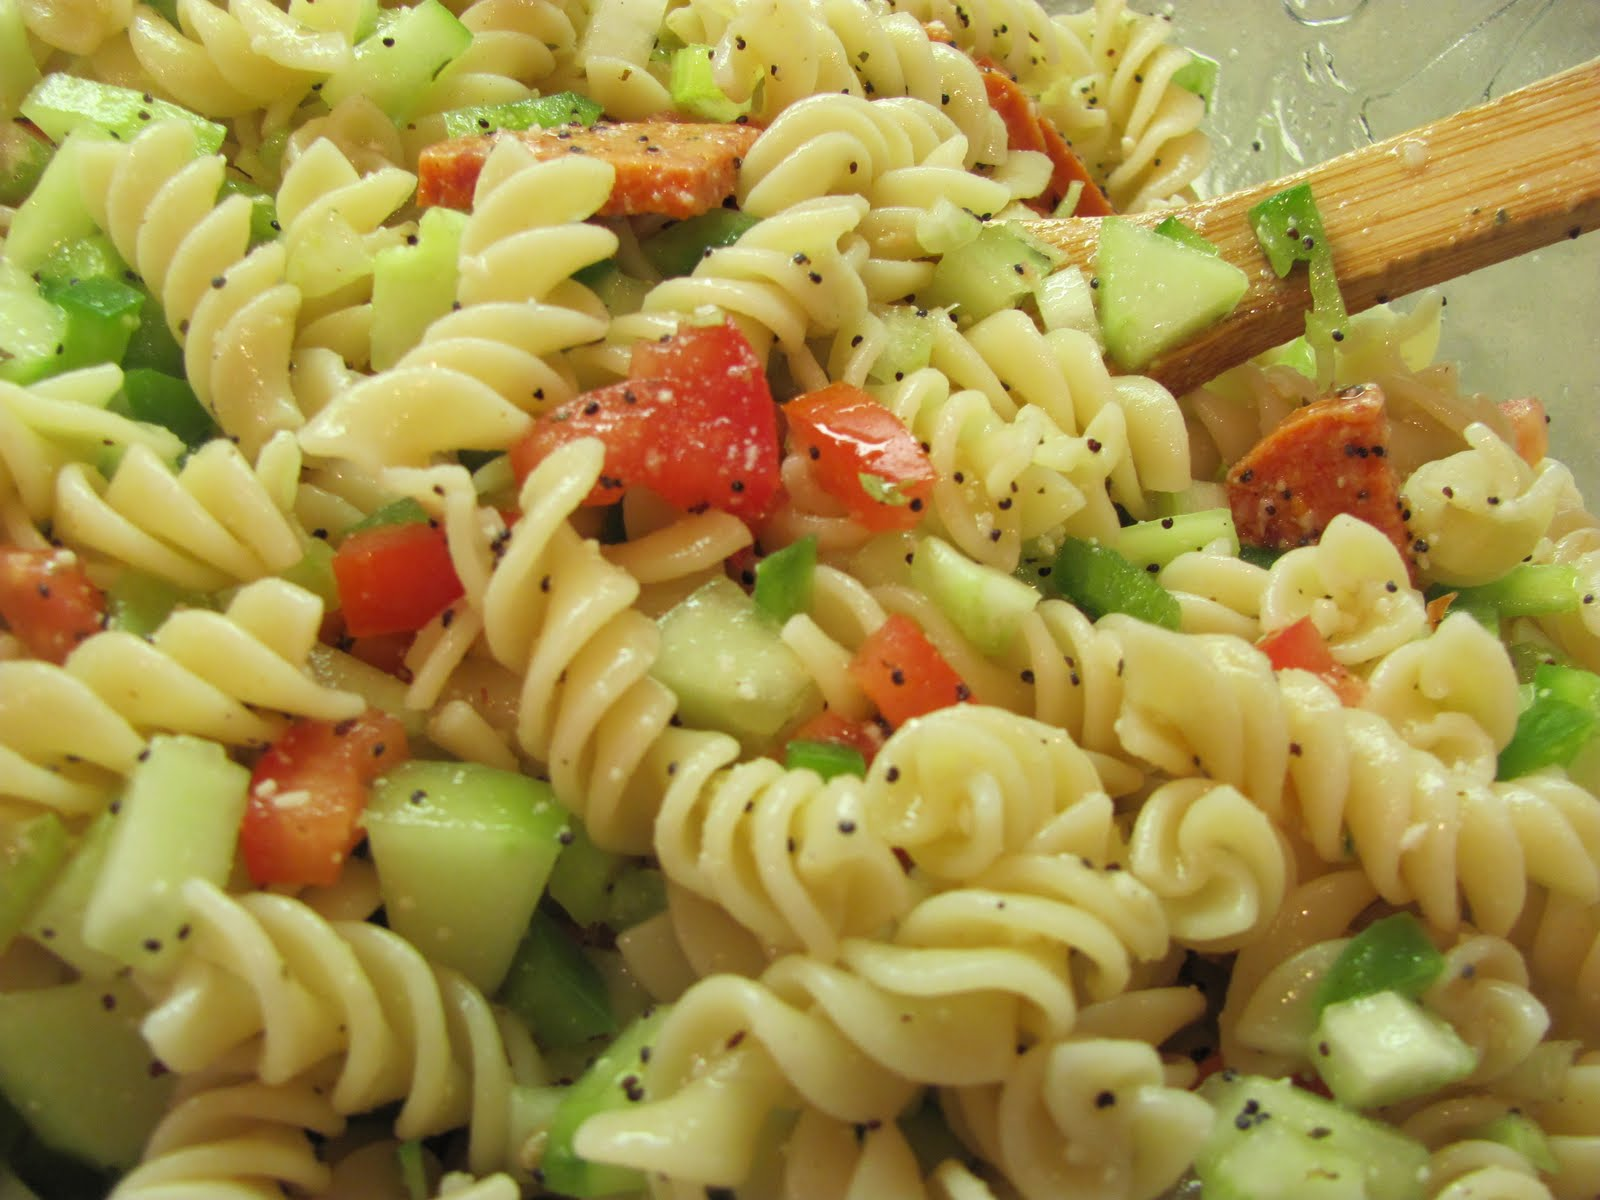 Recipes Online Make Pasta Penne Noodles Or Cold Pasta